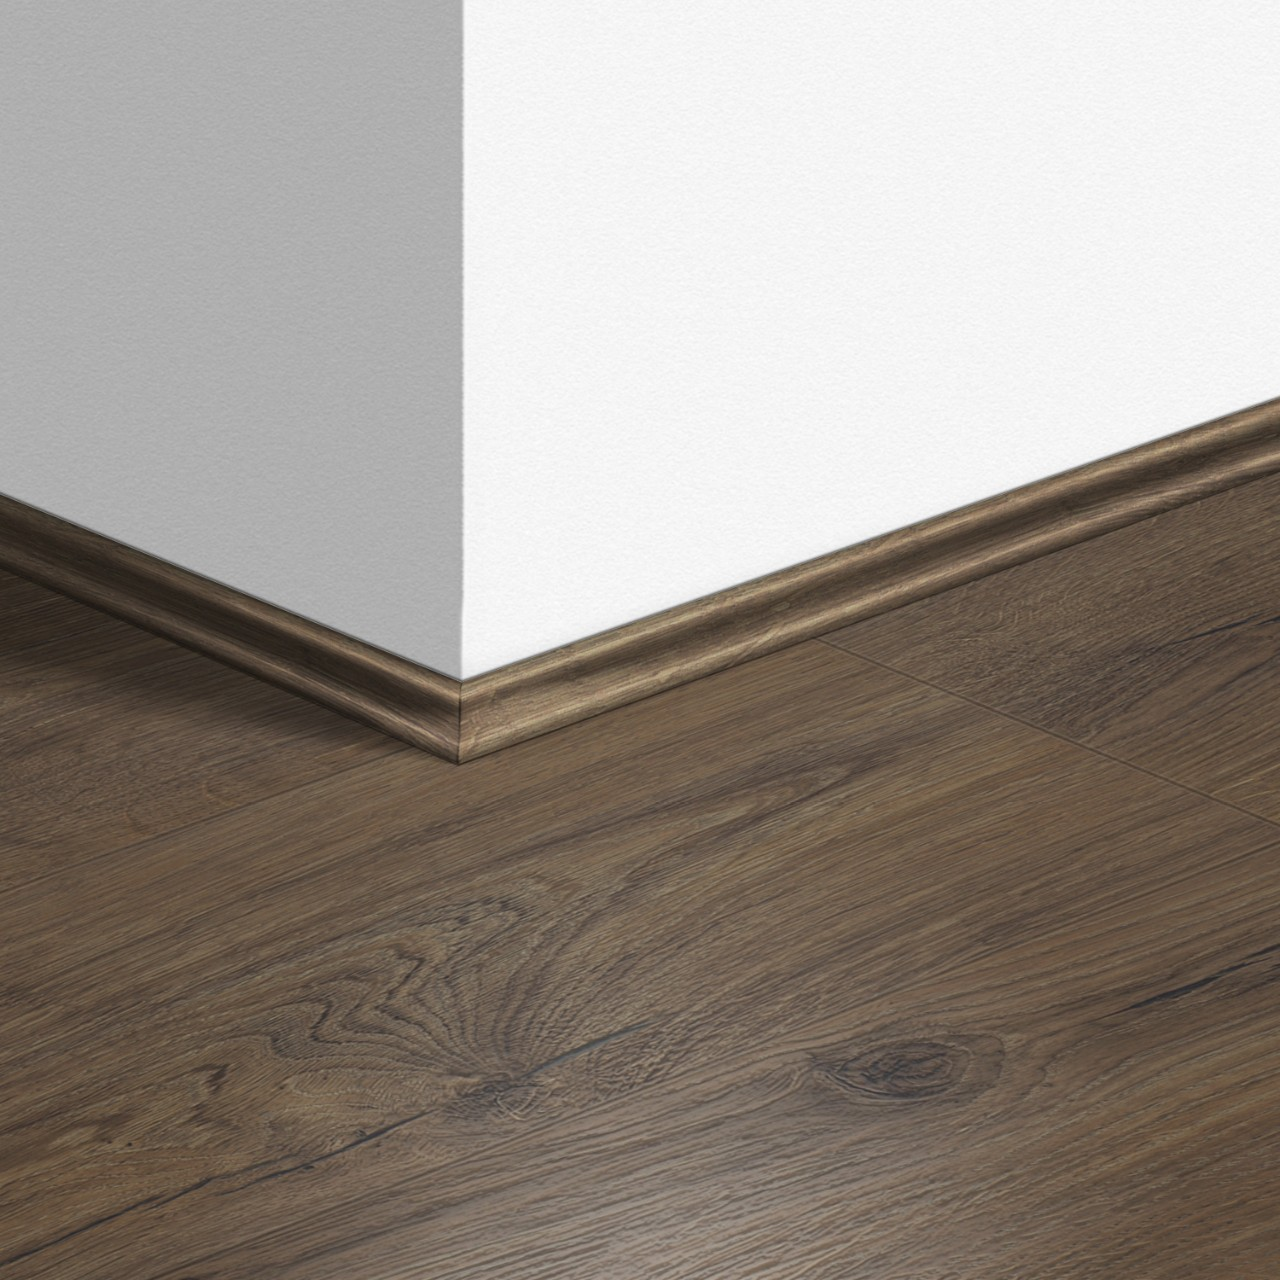 QSSCOT Laminate Accessories Classic oak brown QSSCOT01849